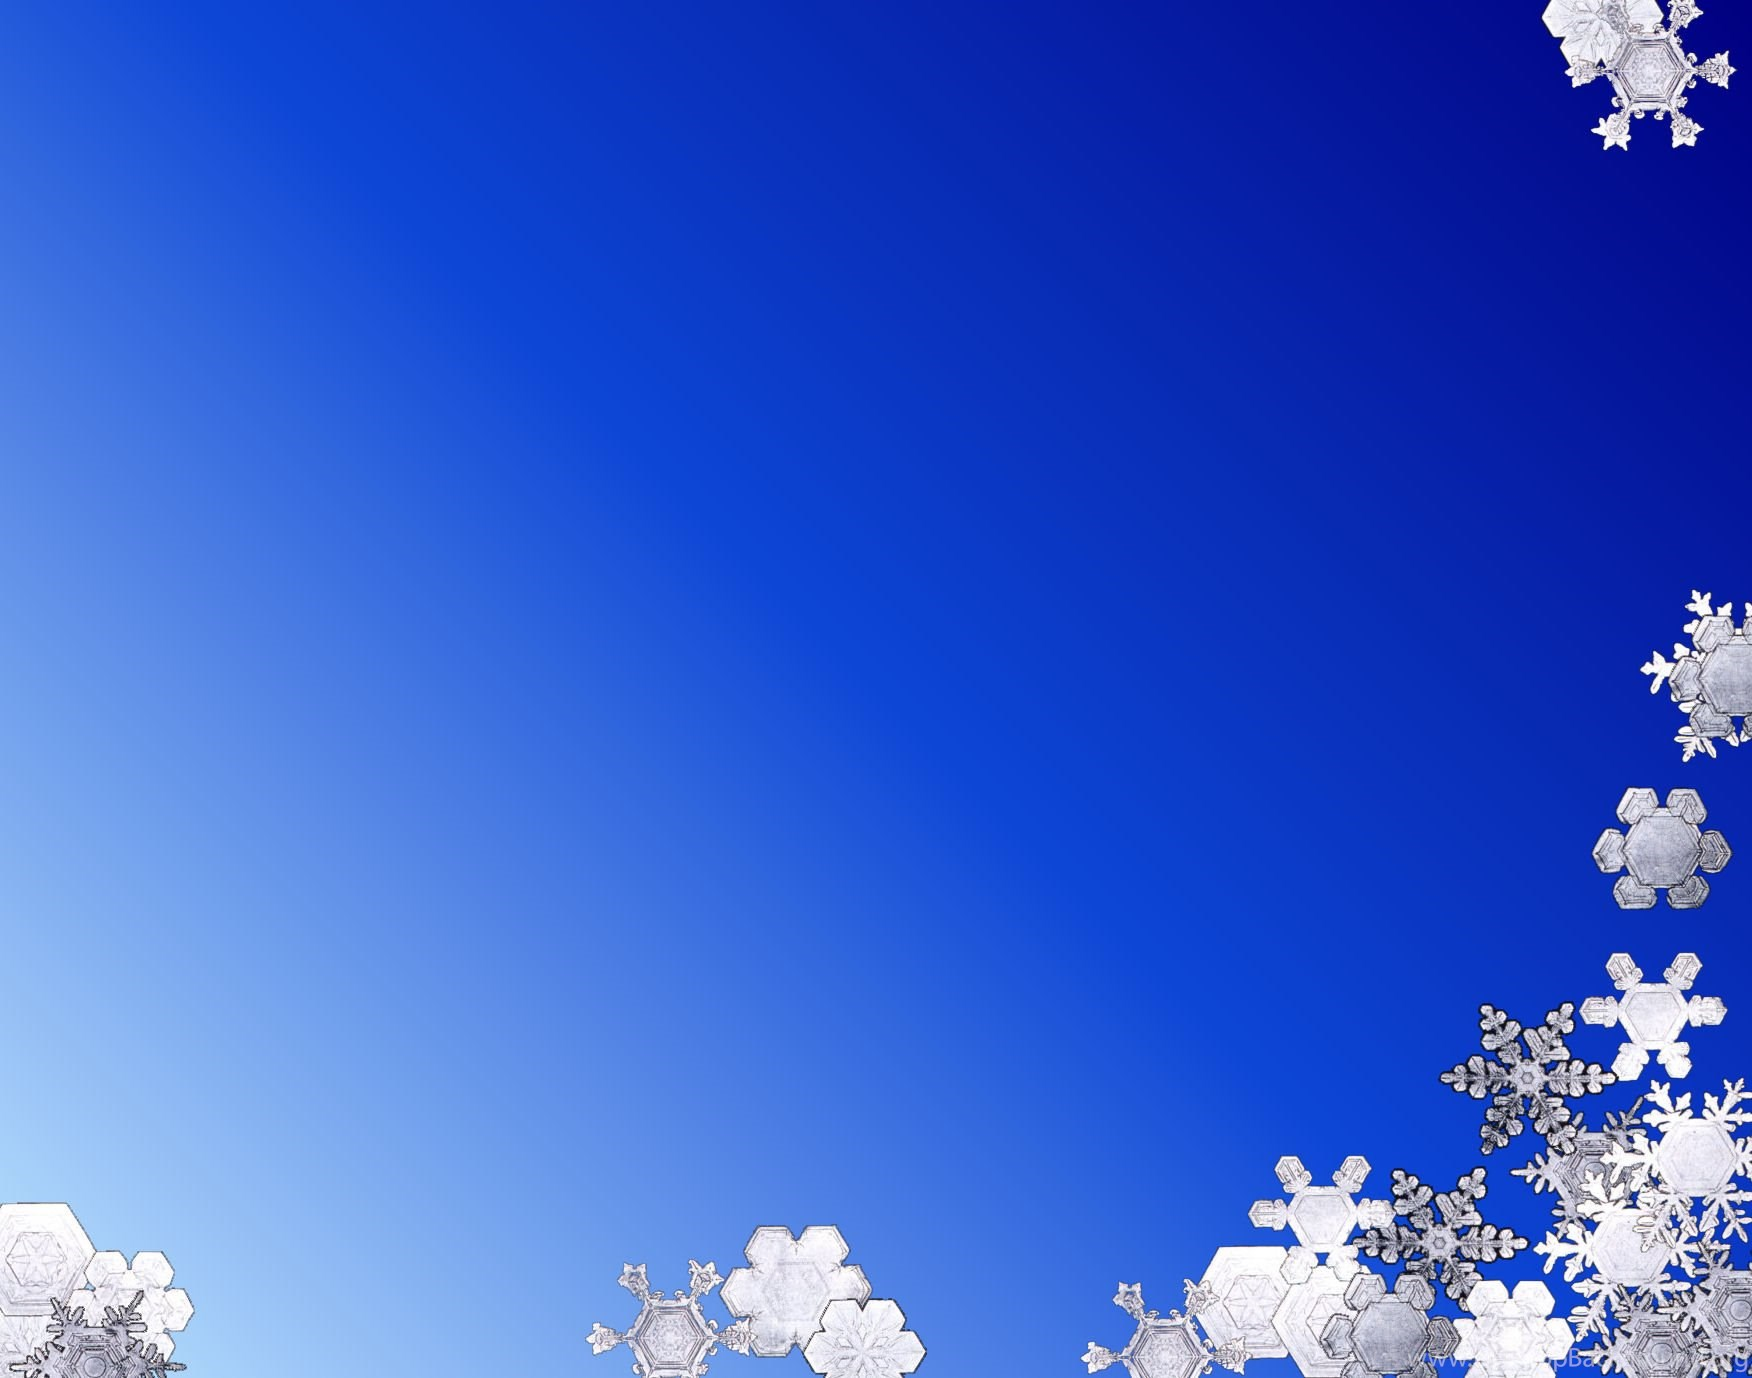 Snow PowerPoint Backgrounds Free Download Desktop Background